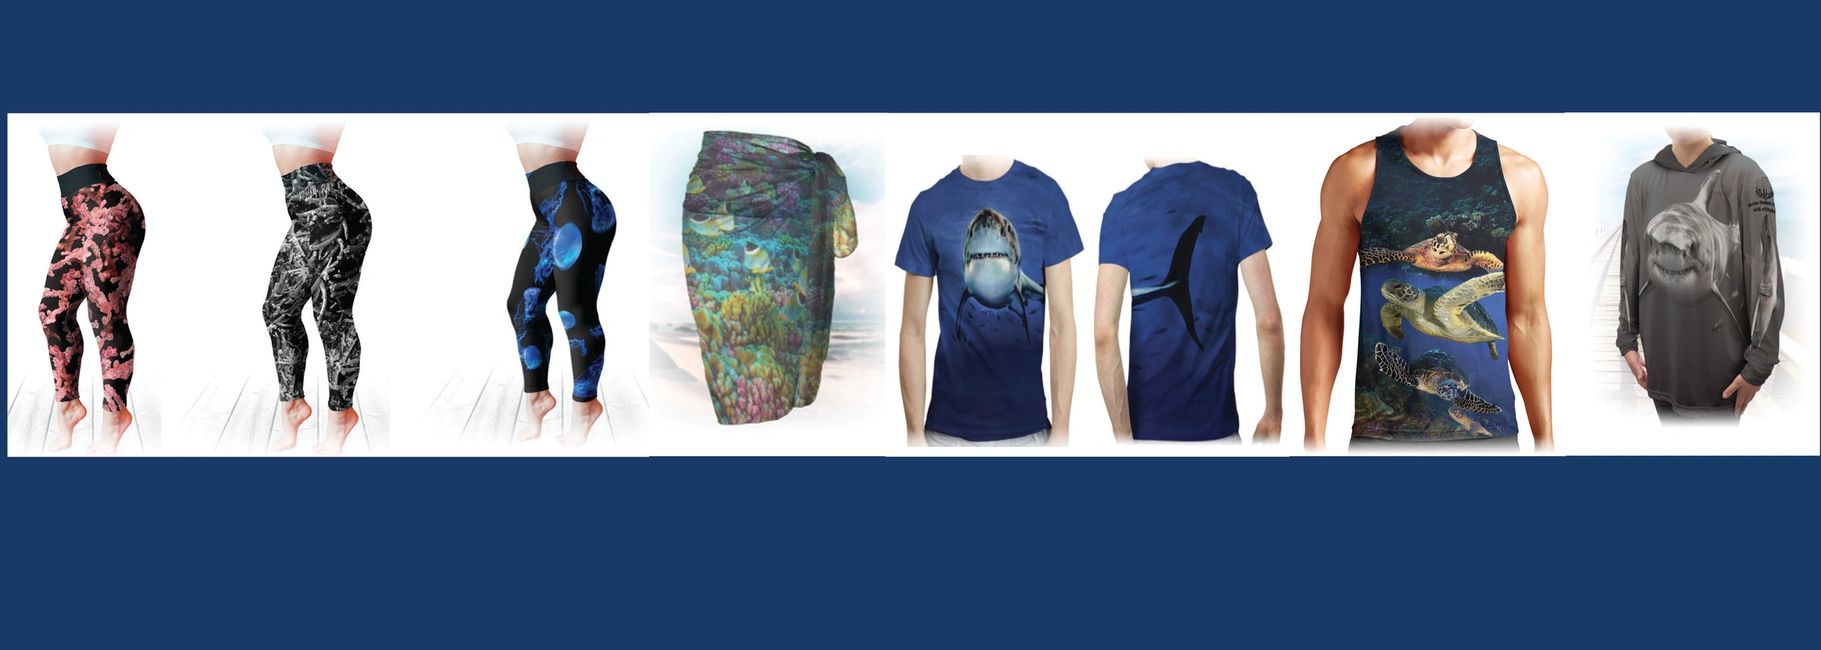 FishAtude Marine themed stuff with attitude offers apparel art - leggings, shirts, and baby wear.